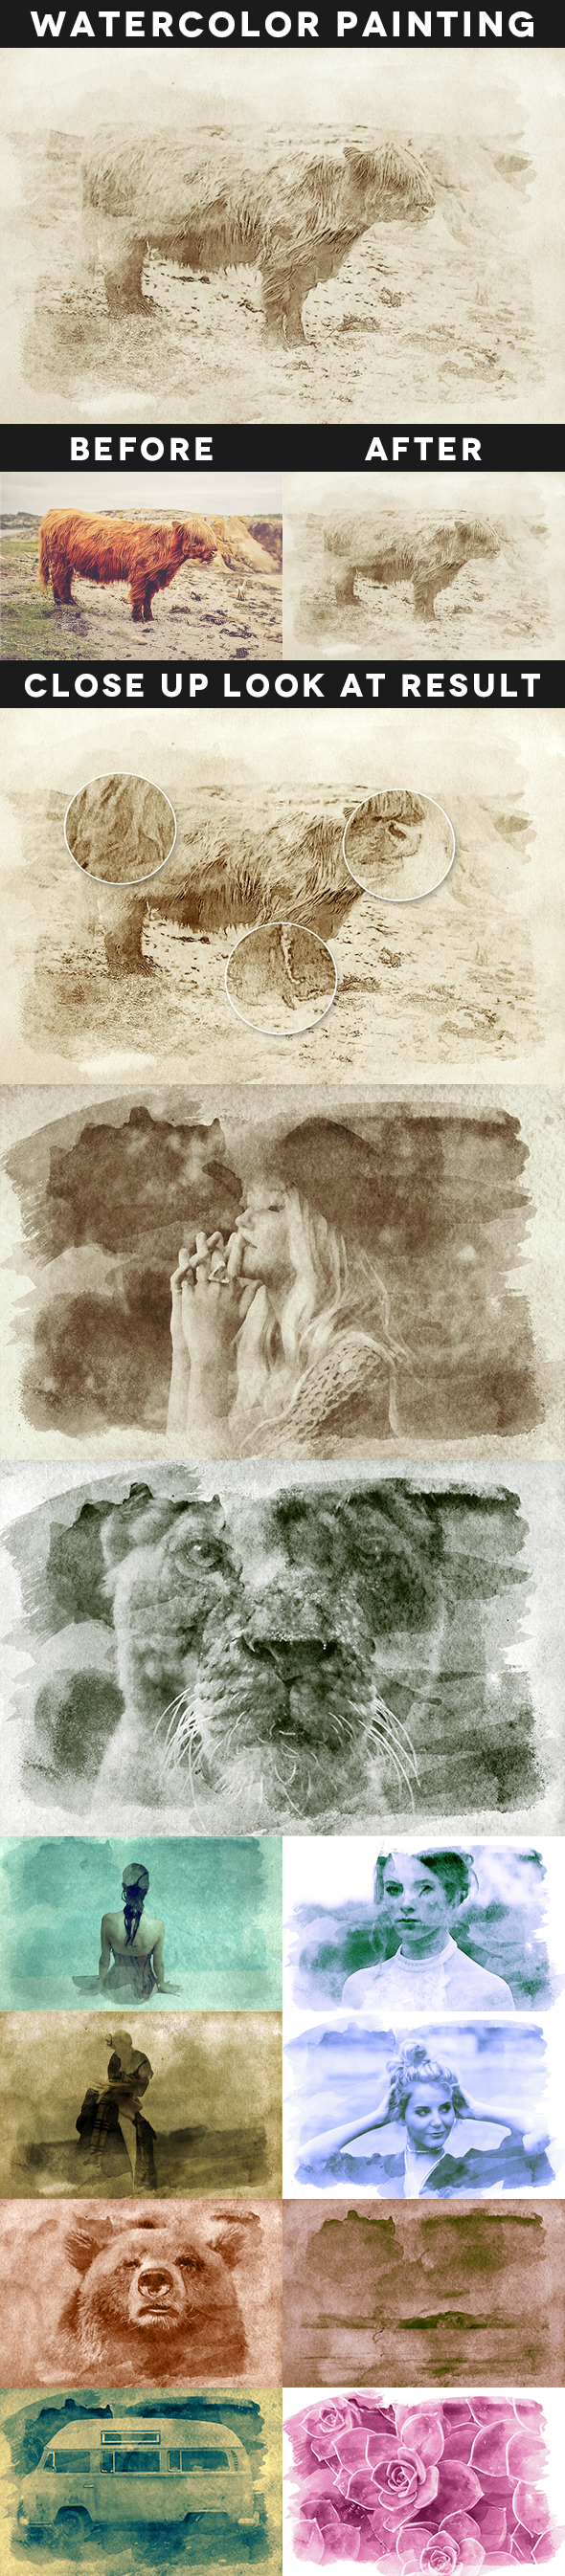 Creative Watercolor Painting Vol. 01 - Photo Effects Actions